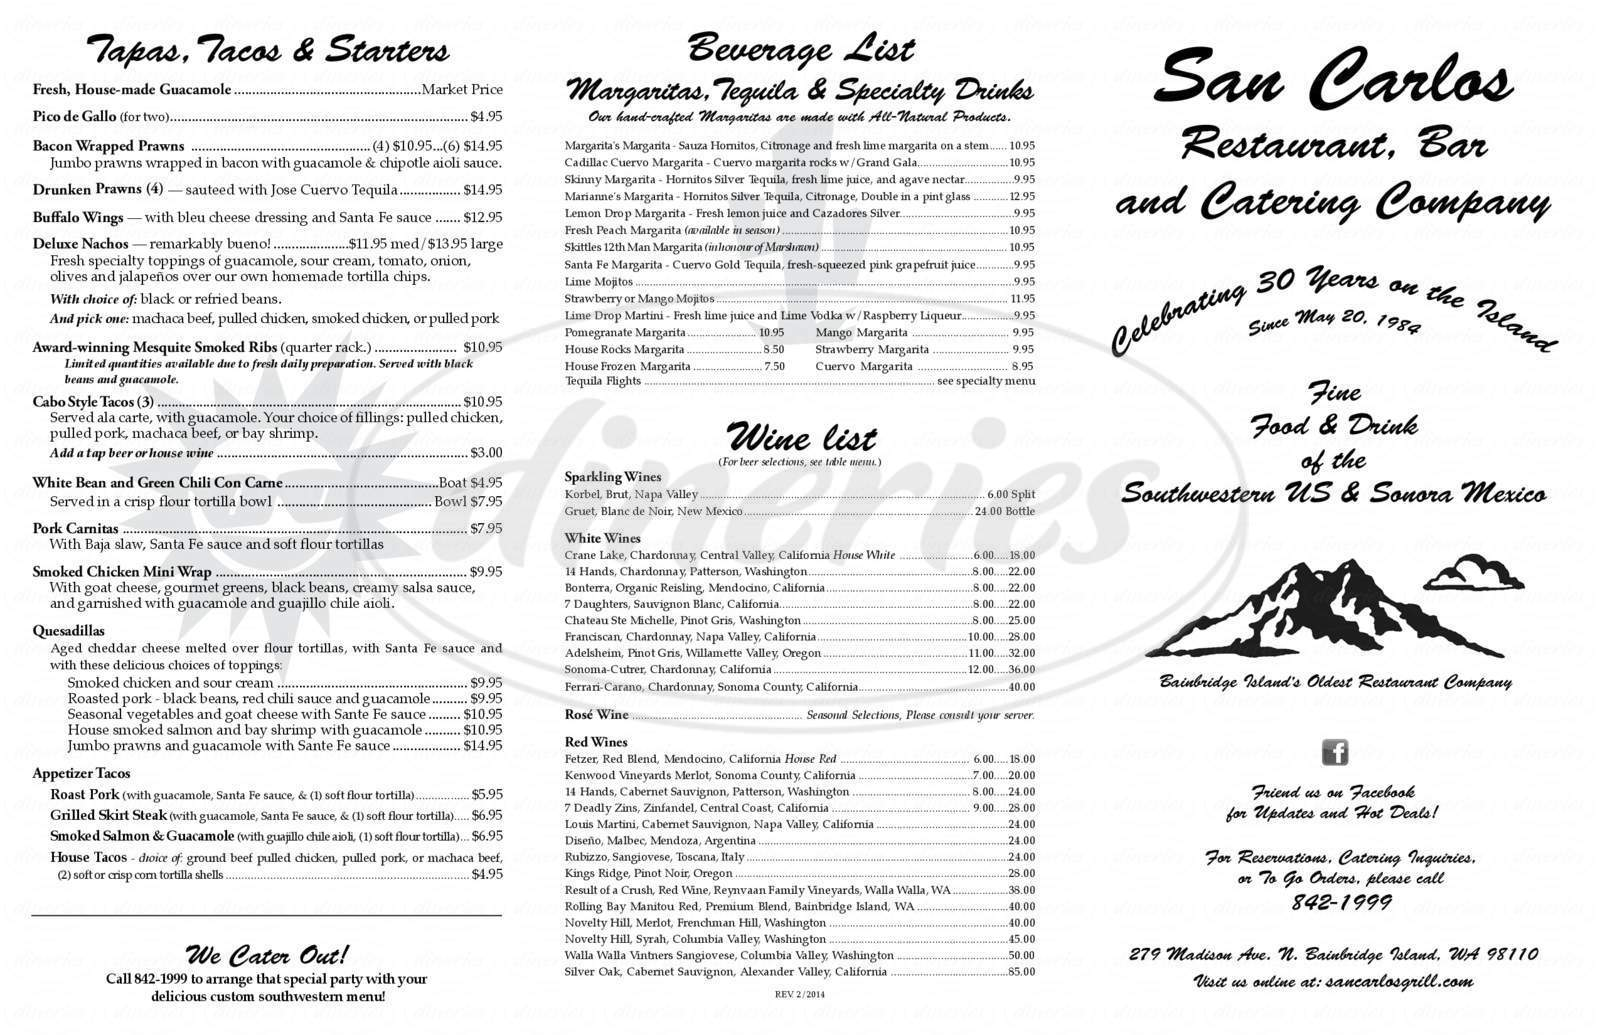 menu for San Carlos Restaurant